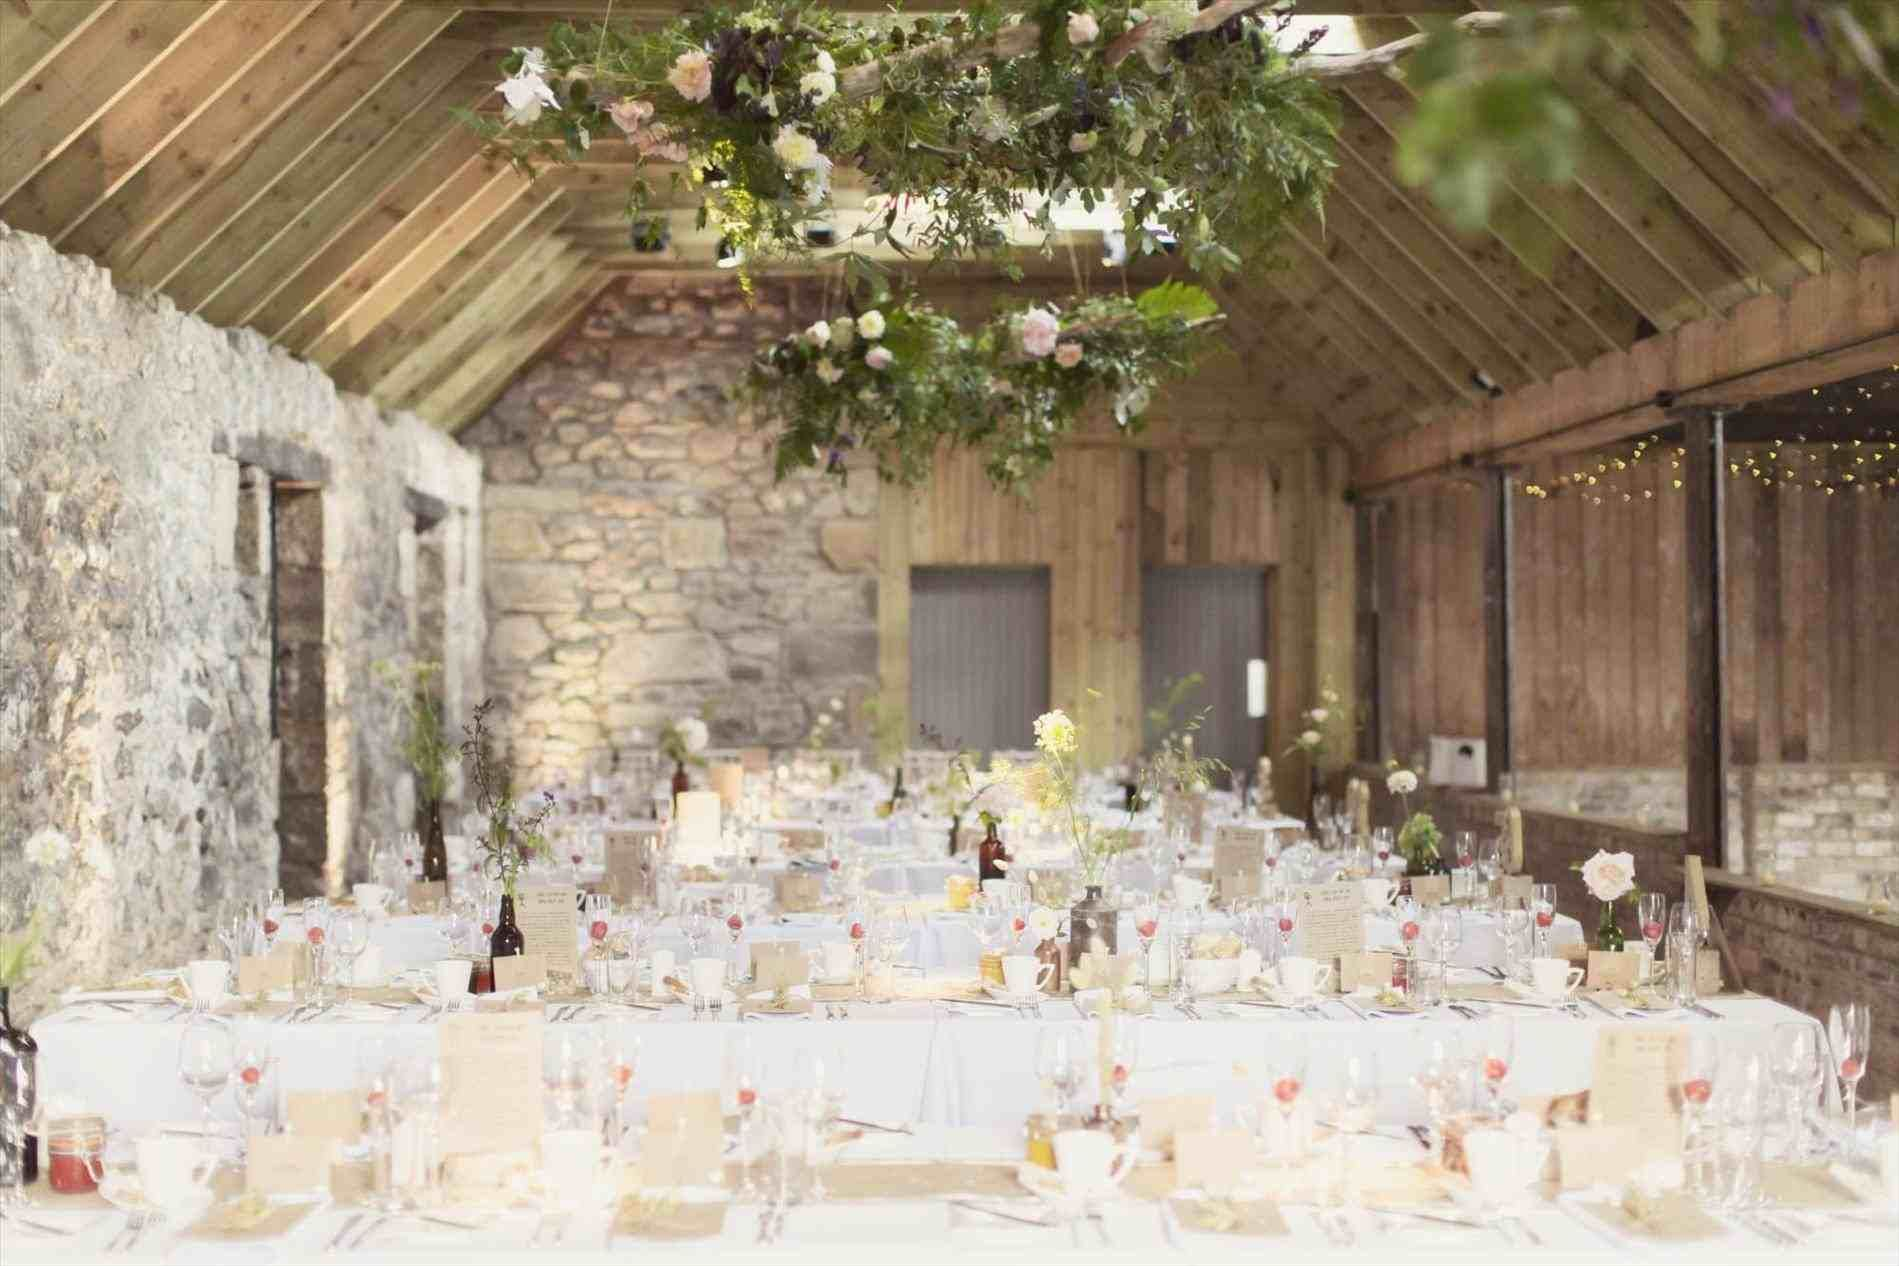 Suggested Sites Hint Wedbridal Site Clean Commerce Immediately This Instant Used Online Online Store Very Cheap Quality Online Sales Wedding Venues Scotland Smallest Wedding Venue Cheap Wedding Venues